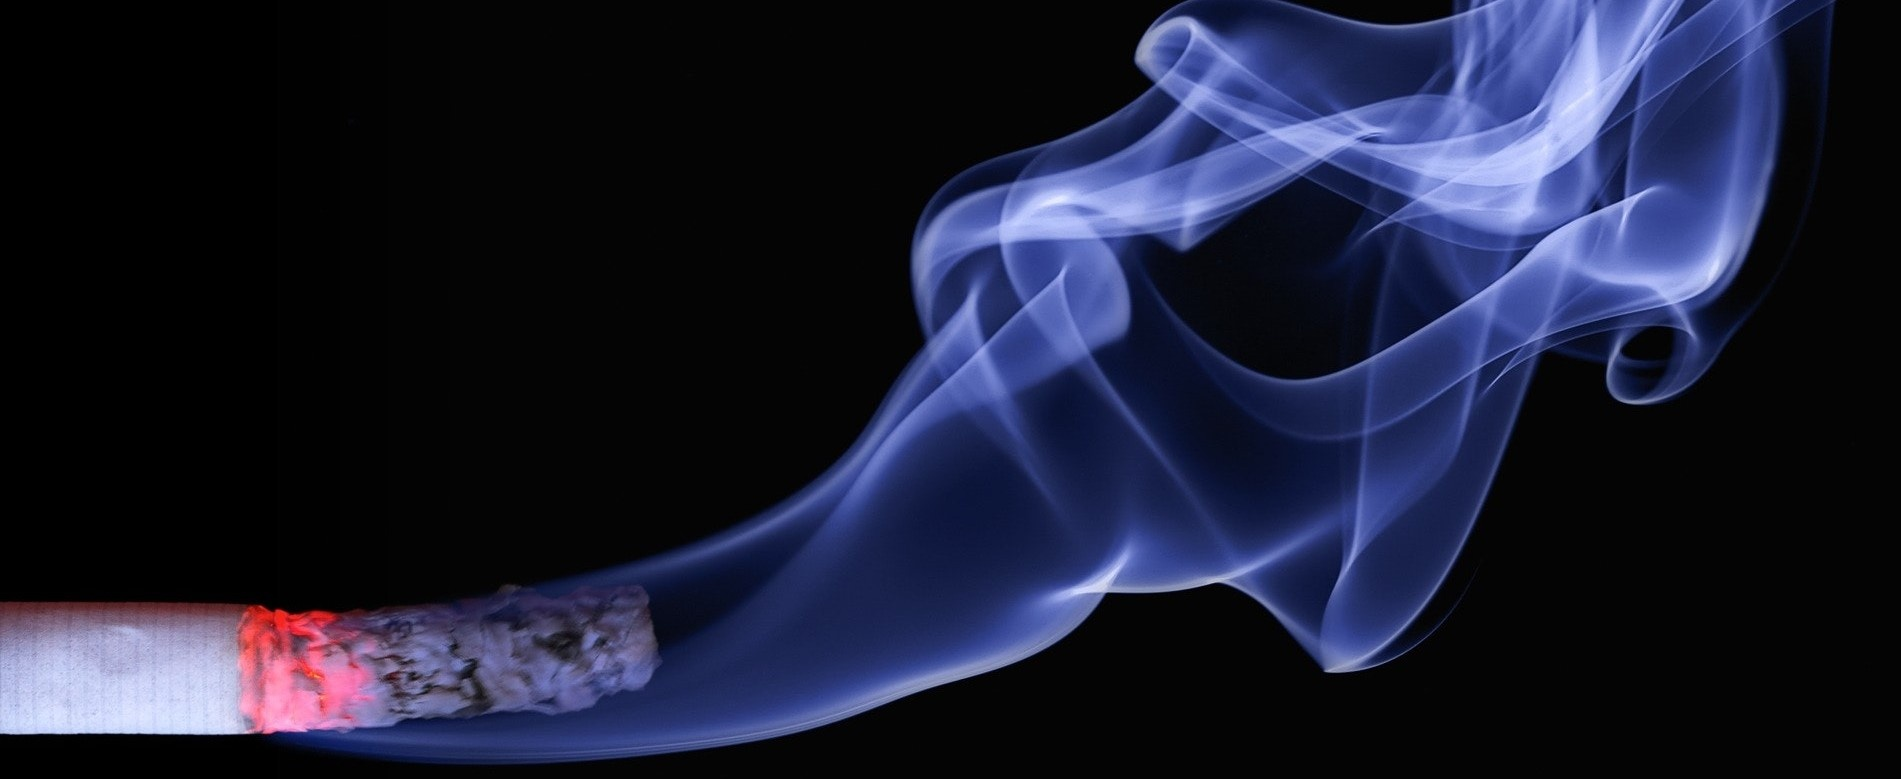 It's hard to believe cigarettes can be more dangerous, but counterfeiters find a way